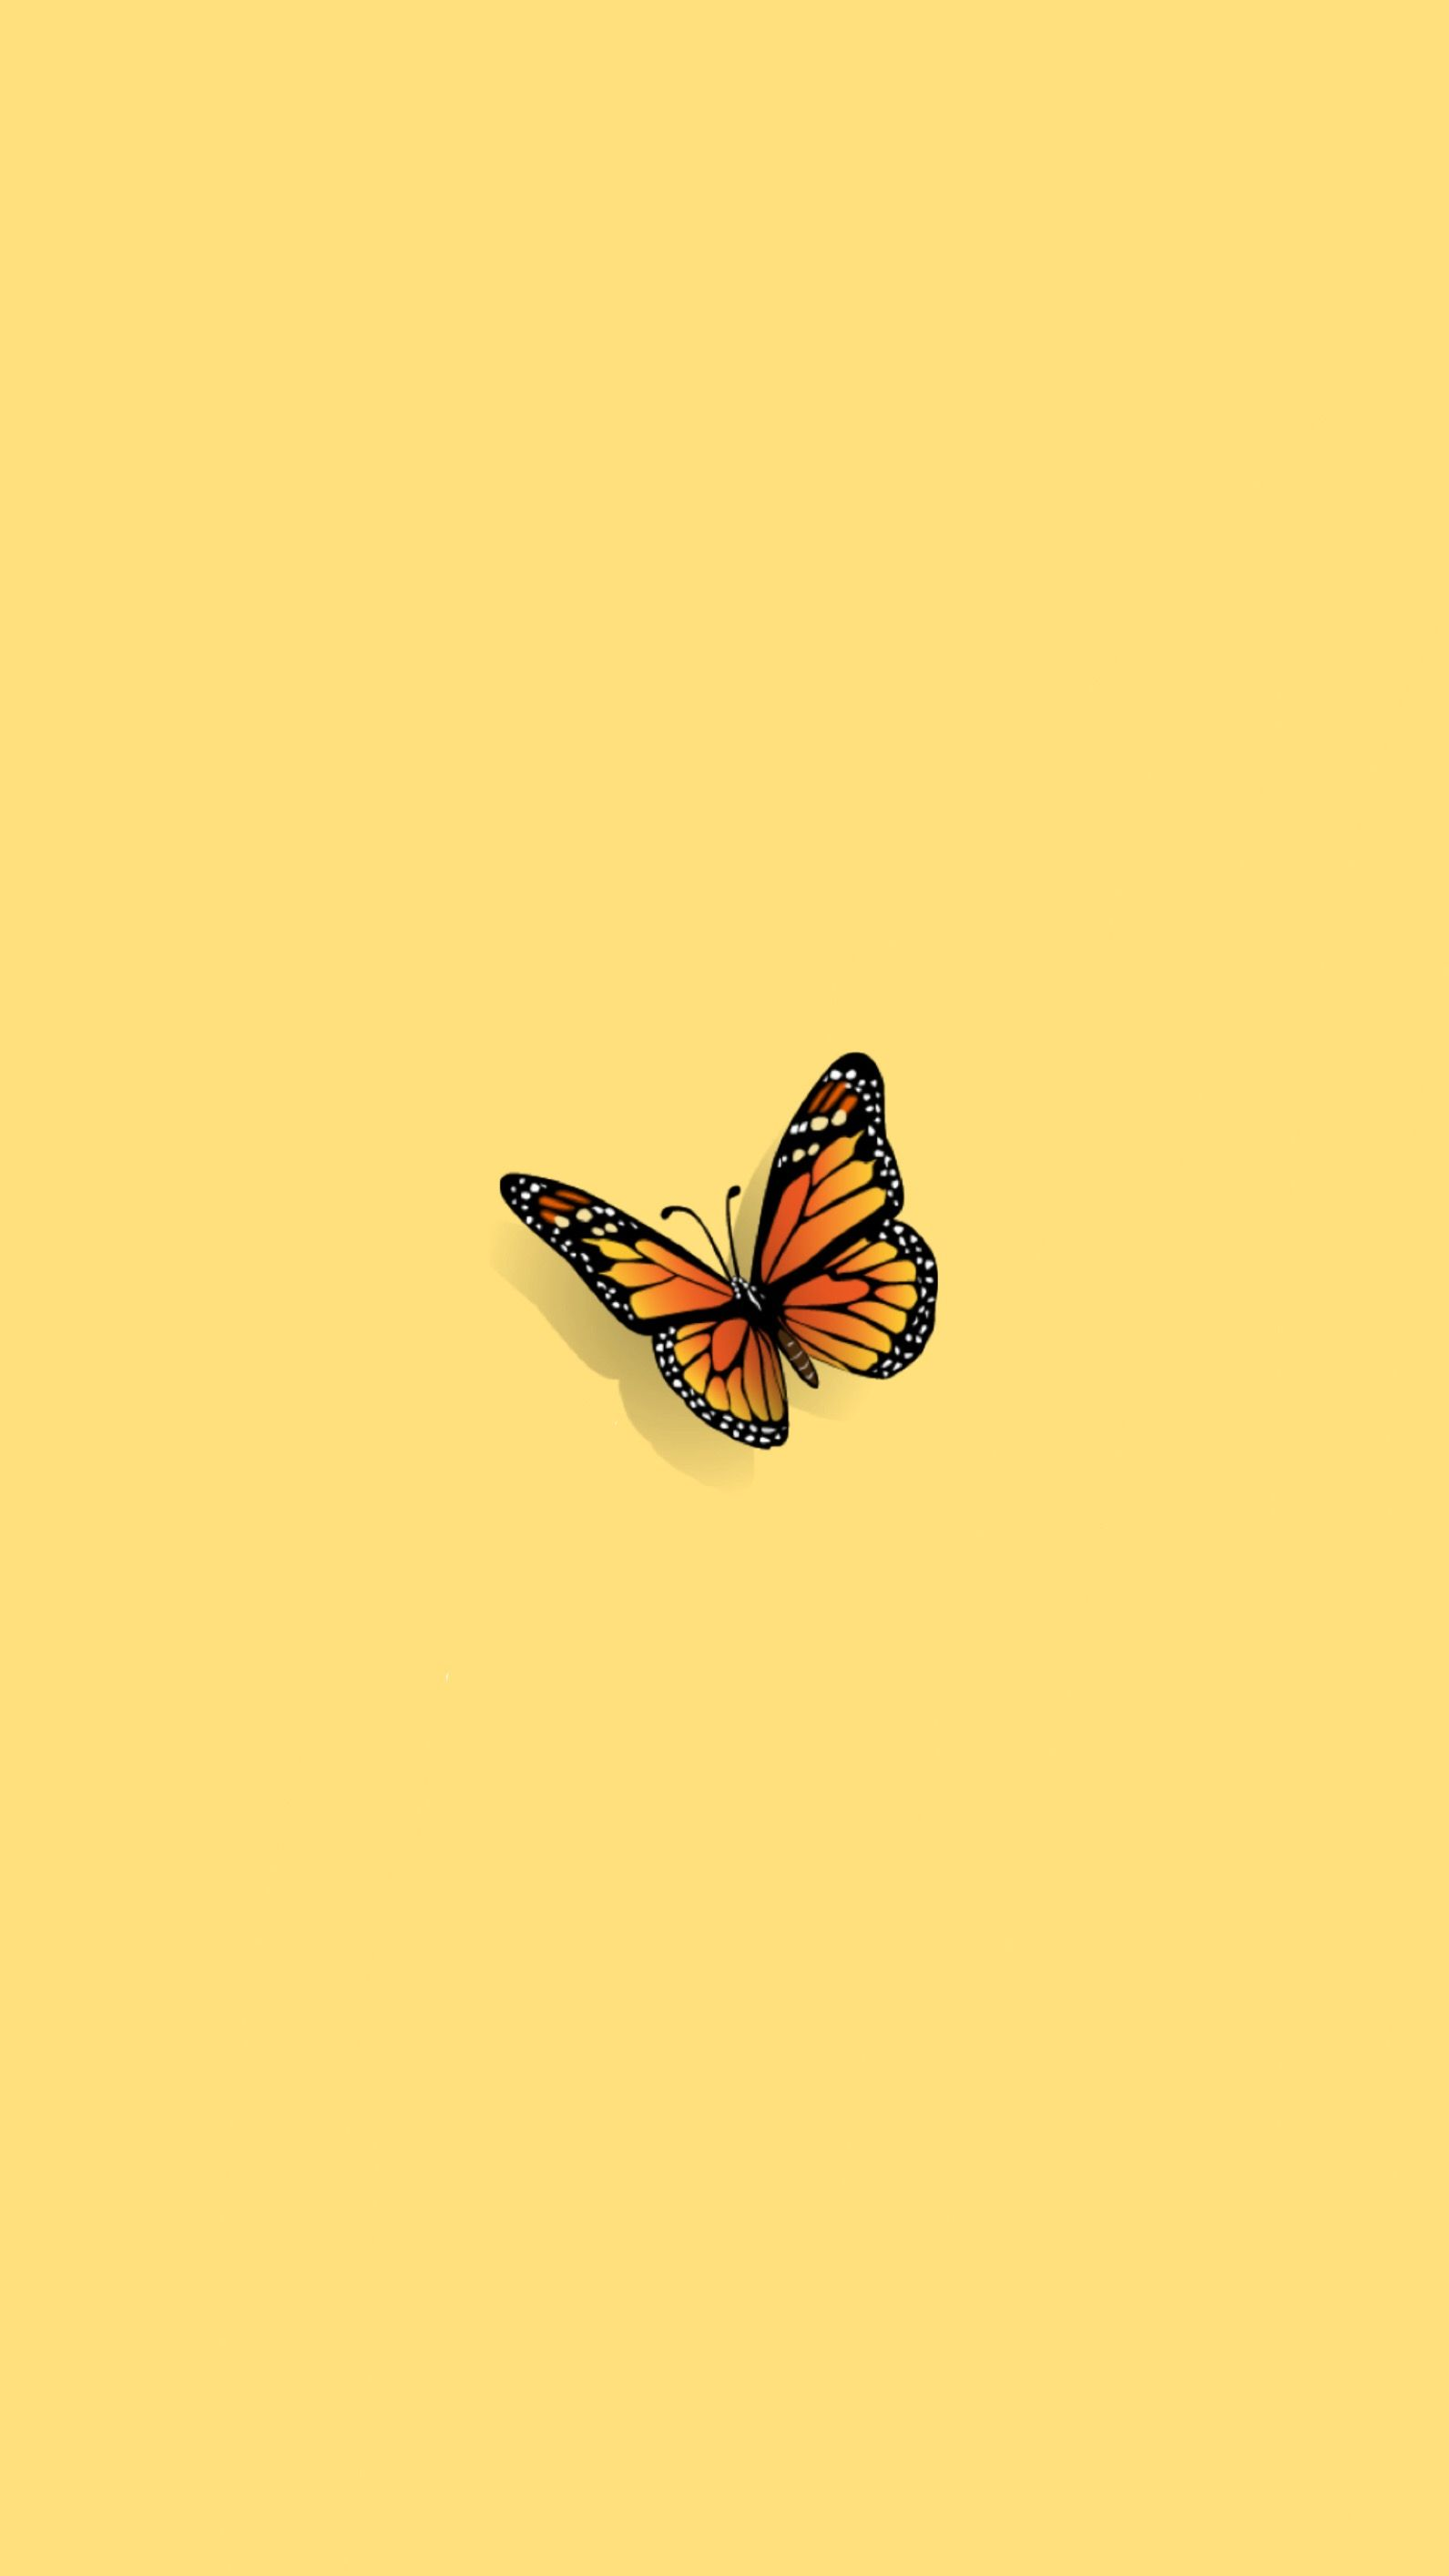 Pin By Tiffany Jade On Backgrounds With Images Butterfly Wallpaper Iphone Iphone Background Wallpaper Iphone Wallpaper Vsco